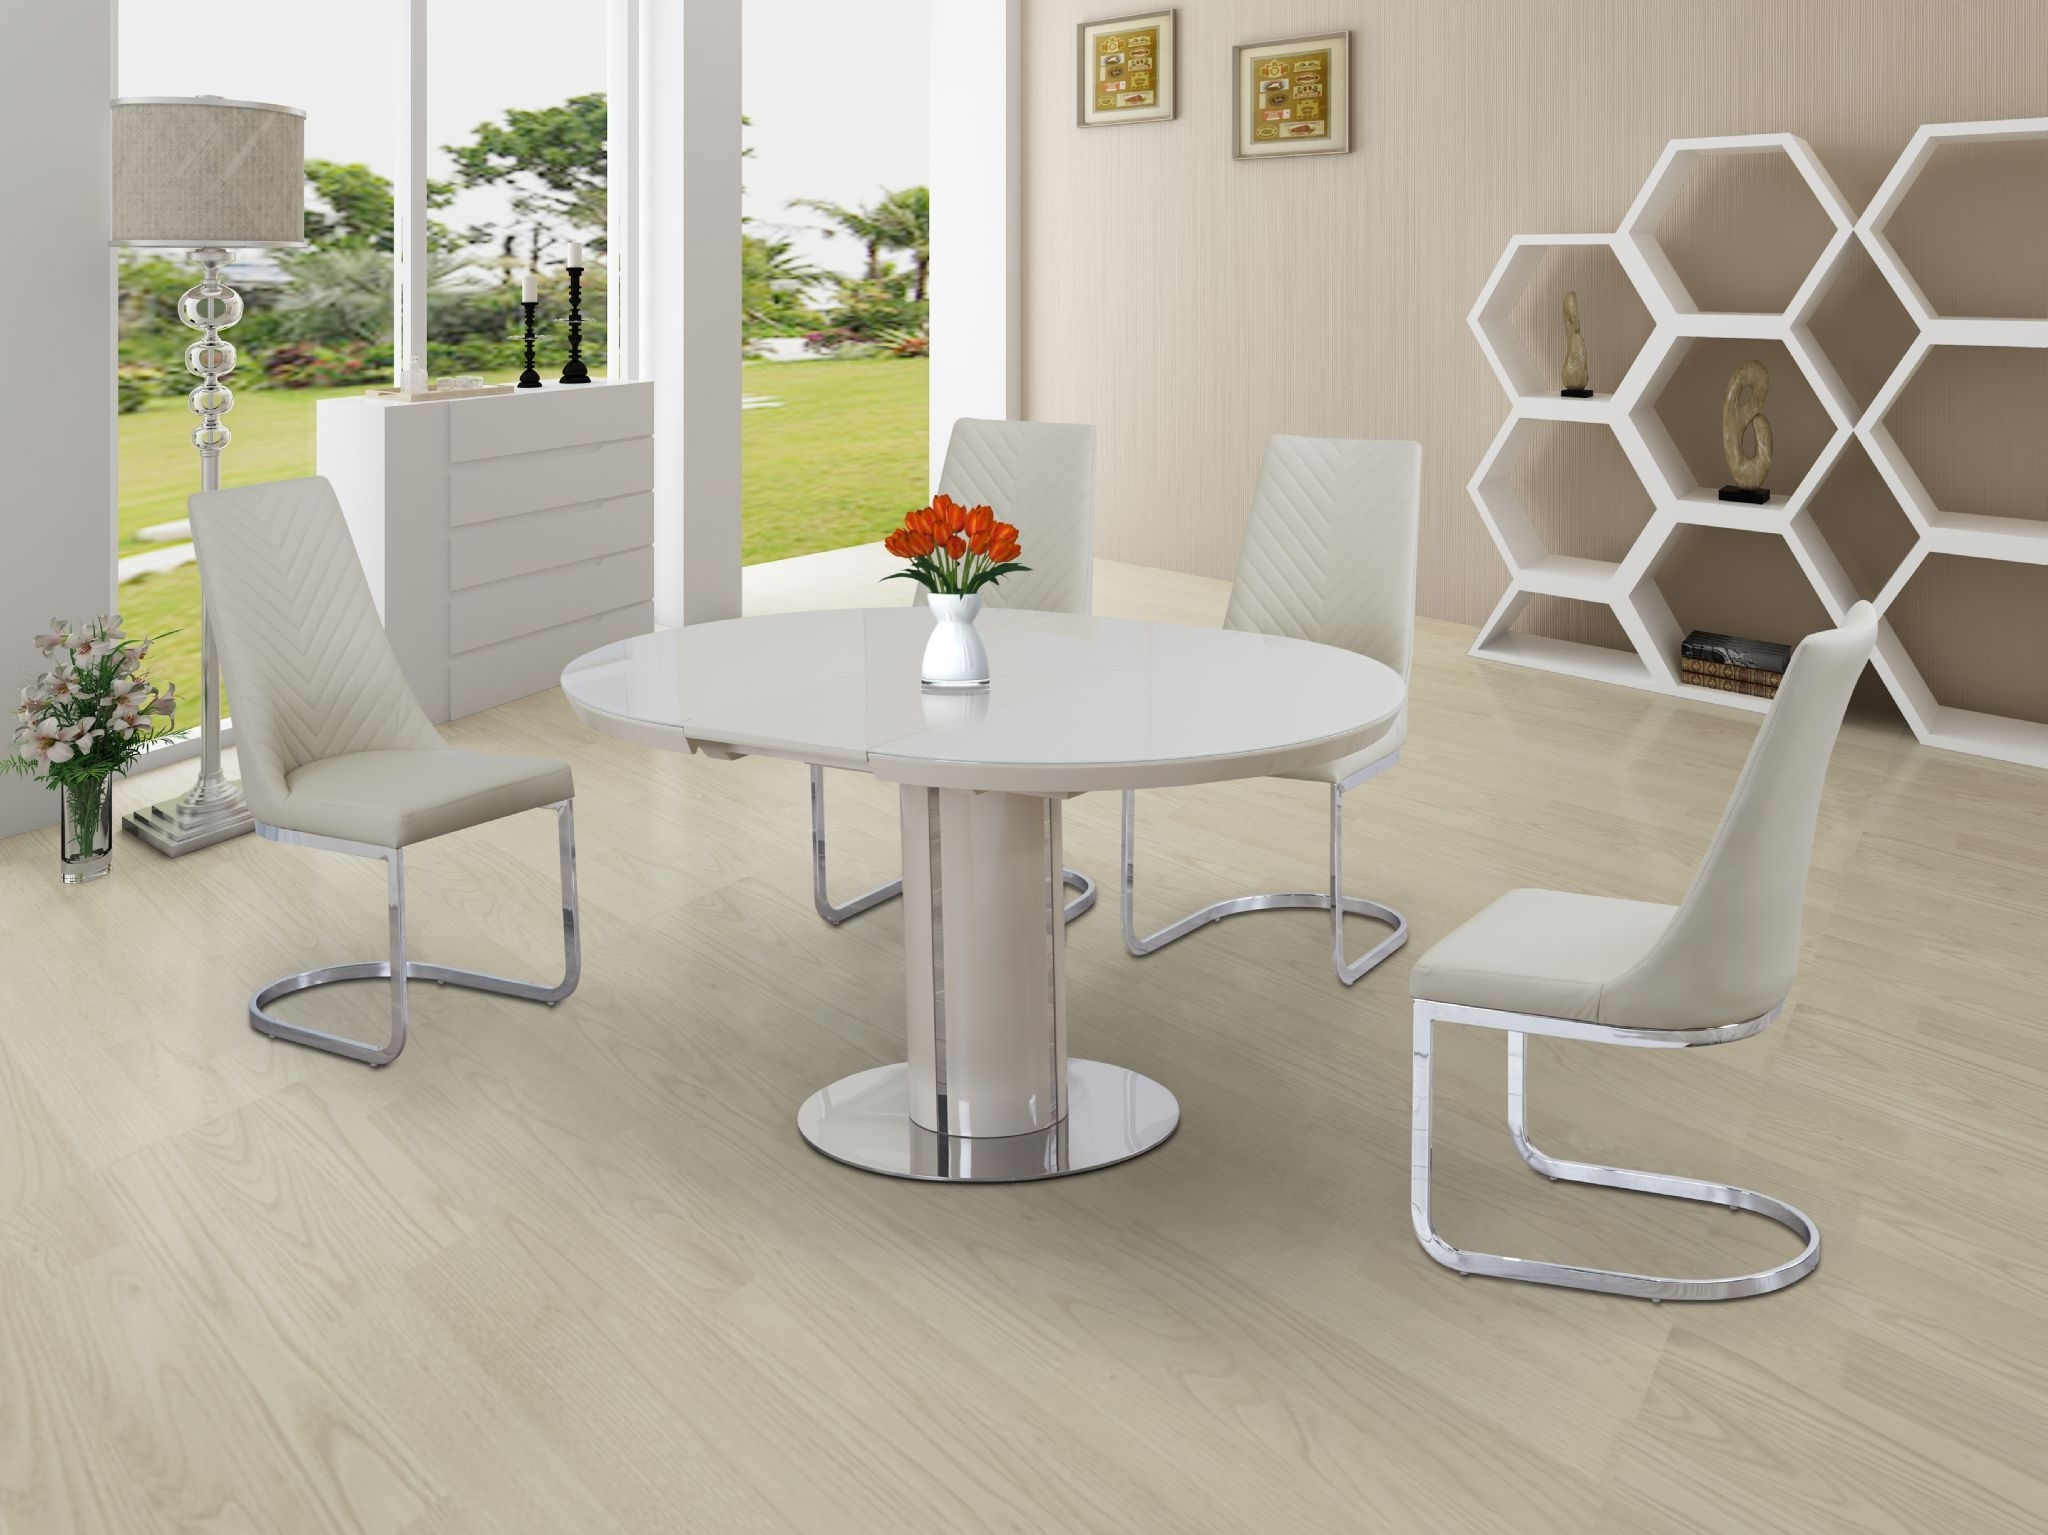 Eclipse Round / Oval Gloss & Glass Extending 110 To 145 Cm Dining Table –  Cream For Favorite Oval Extending Dining Tables And Chairs (View 5 of 25)